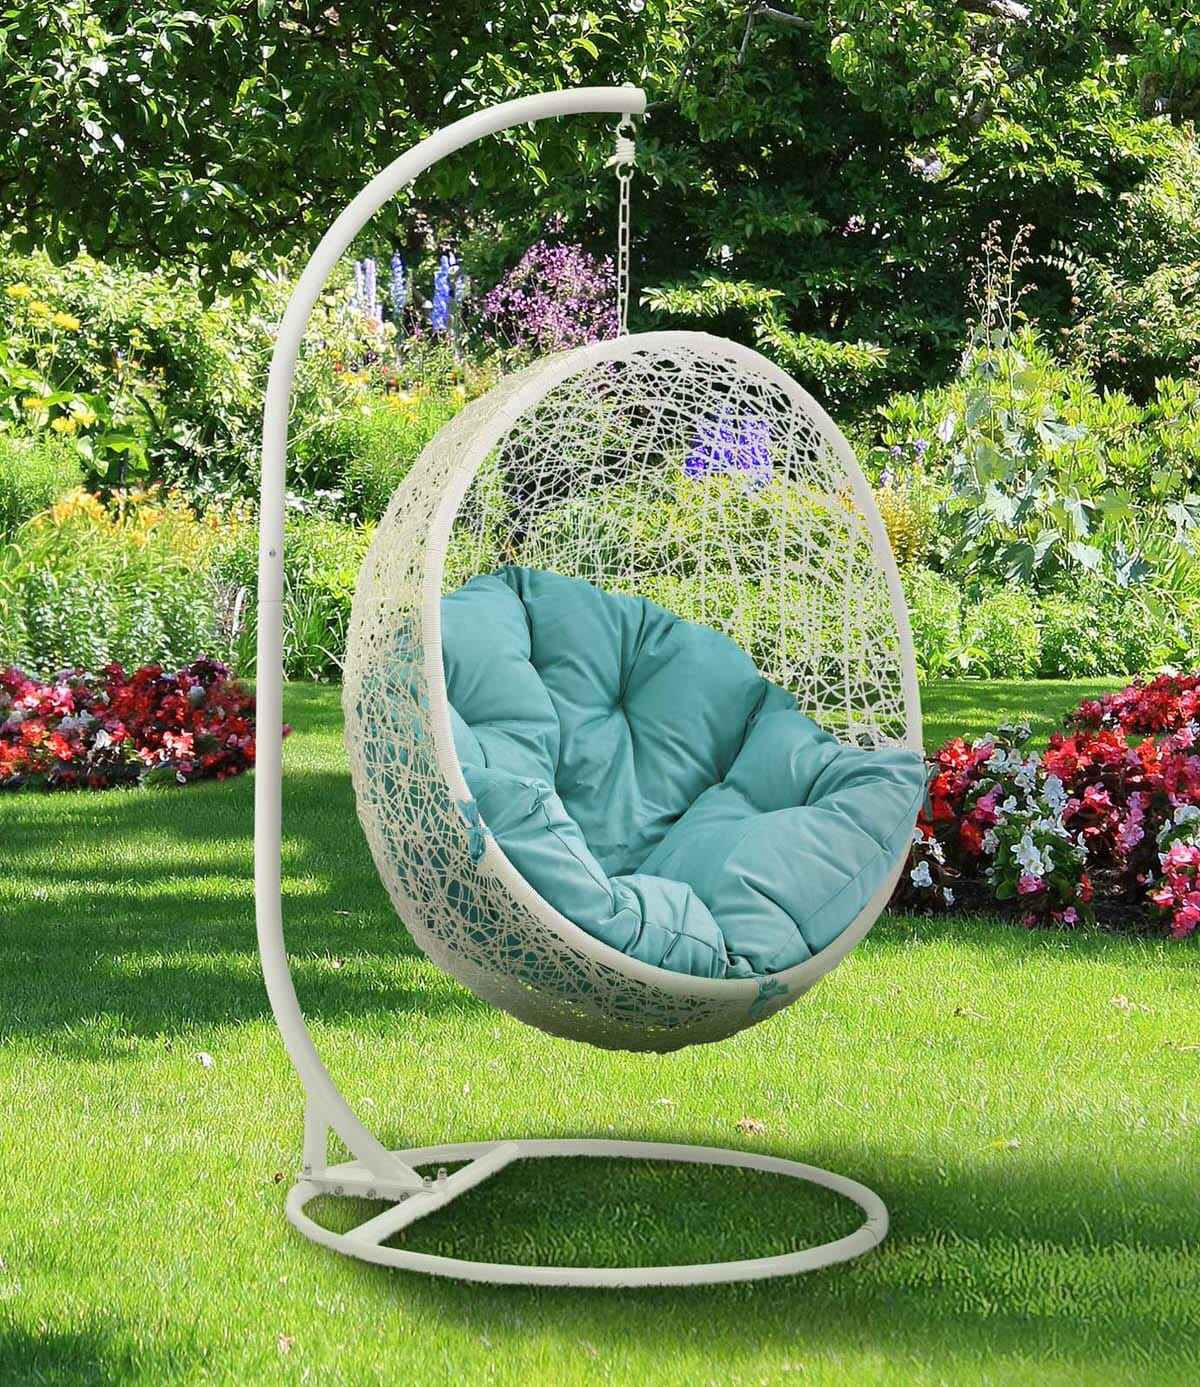 Hide Outdoor Patio Swing Chair With Stand White Turquoise By Modern Living